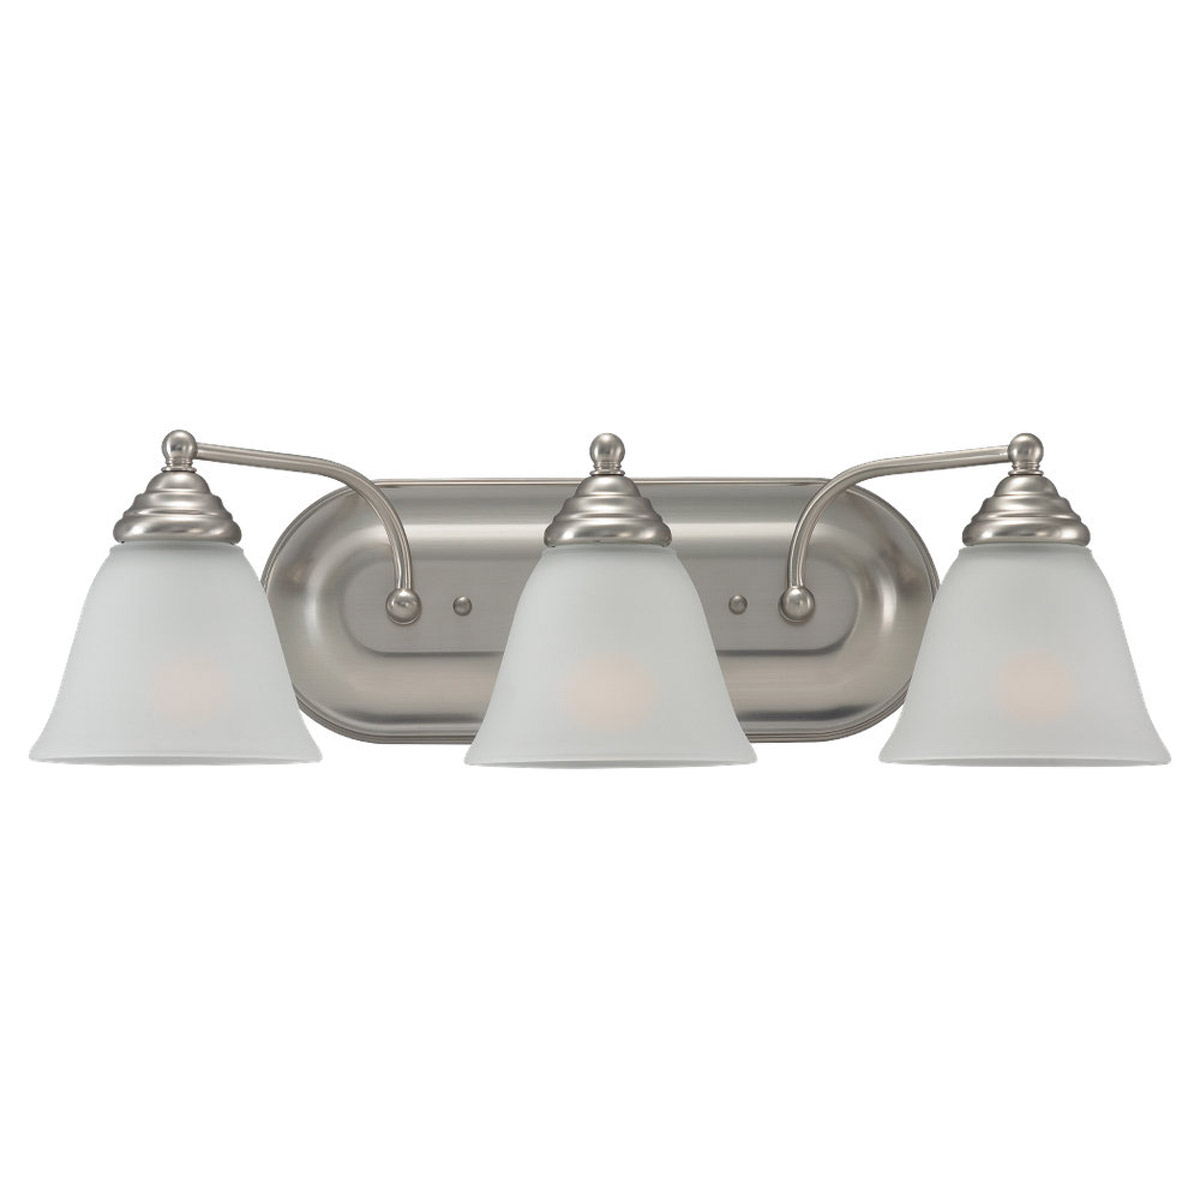 Sea Gull Lighting Albany 3 Light Bath Vanity in Brushed Nickel 44577-962